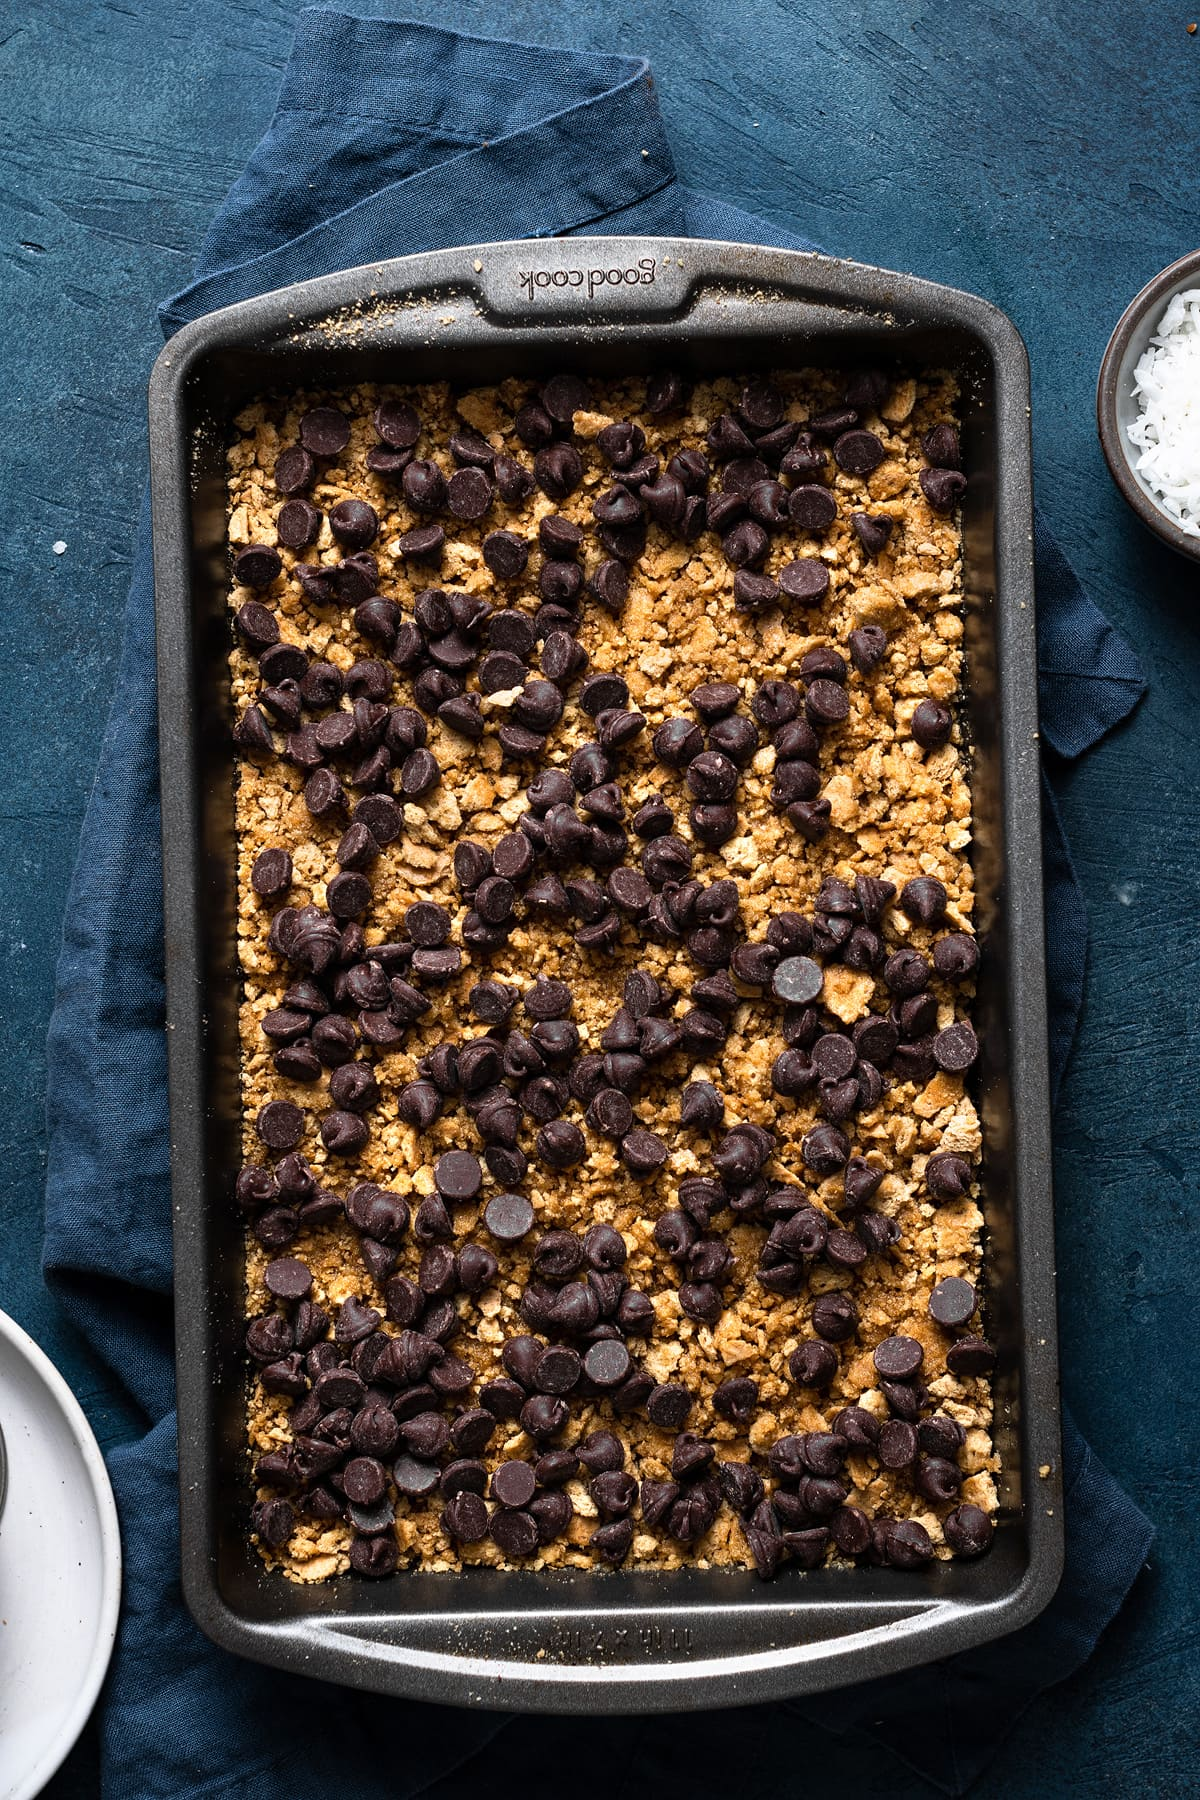 Showing how to make magic 7 layer bars. Sprinkling chocolate chips over graham cracker layer in baking dish.